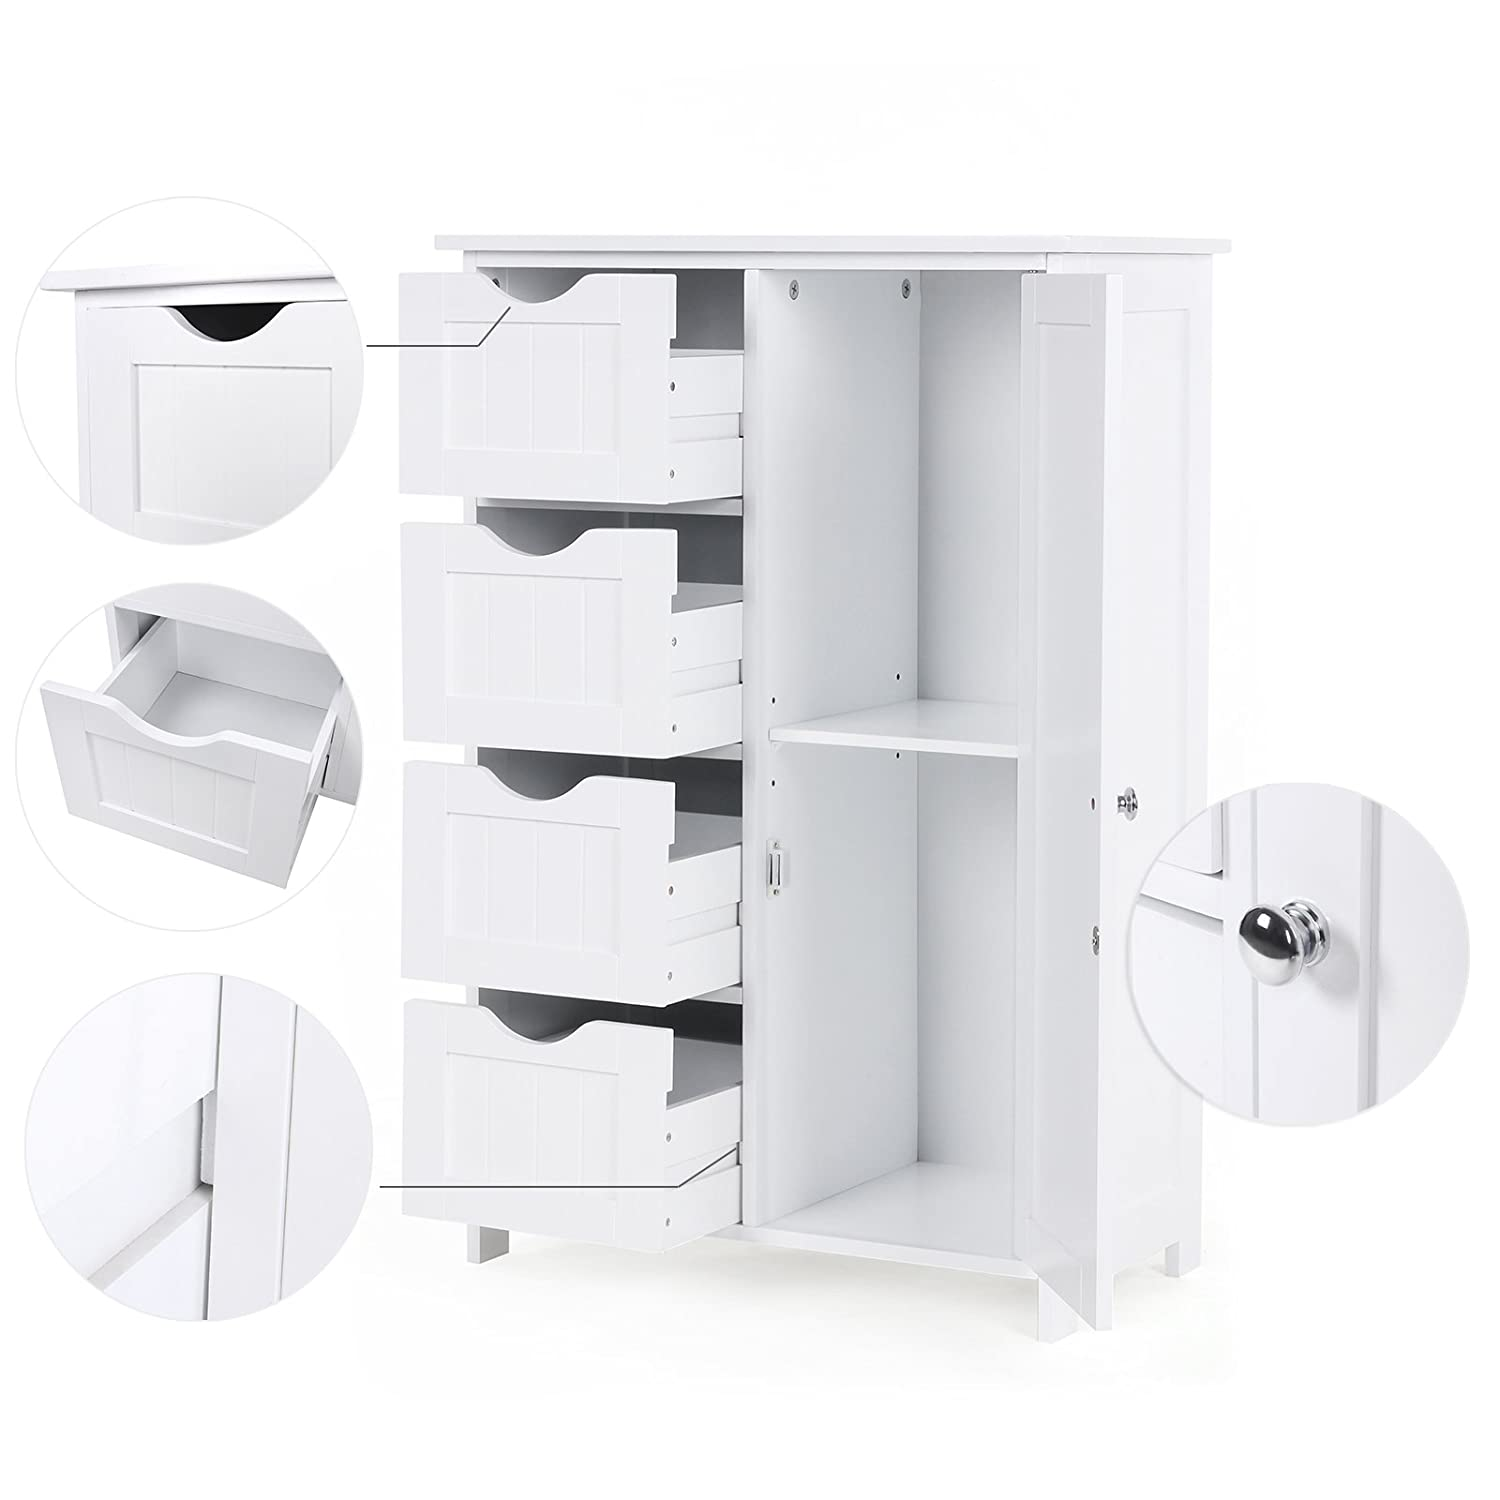 White ULHC41W VASAGLE Bathroom Storage Cabinet Floor Cabinet with Adjustable Shelf and Drawers